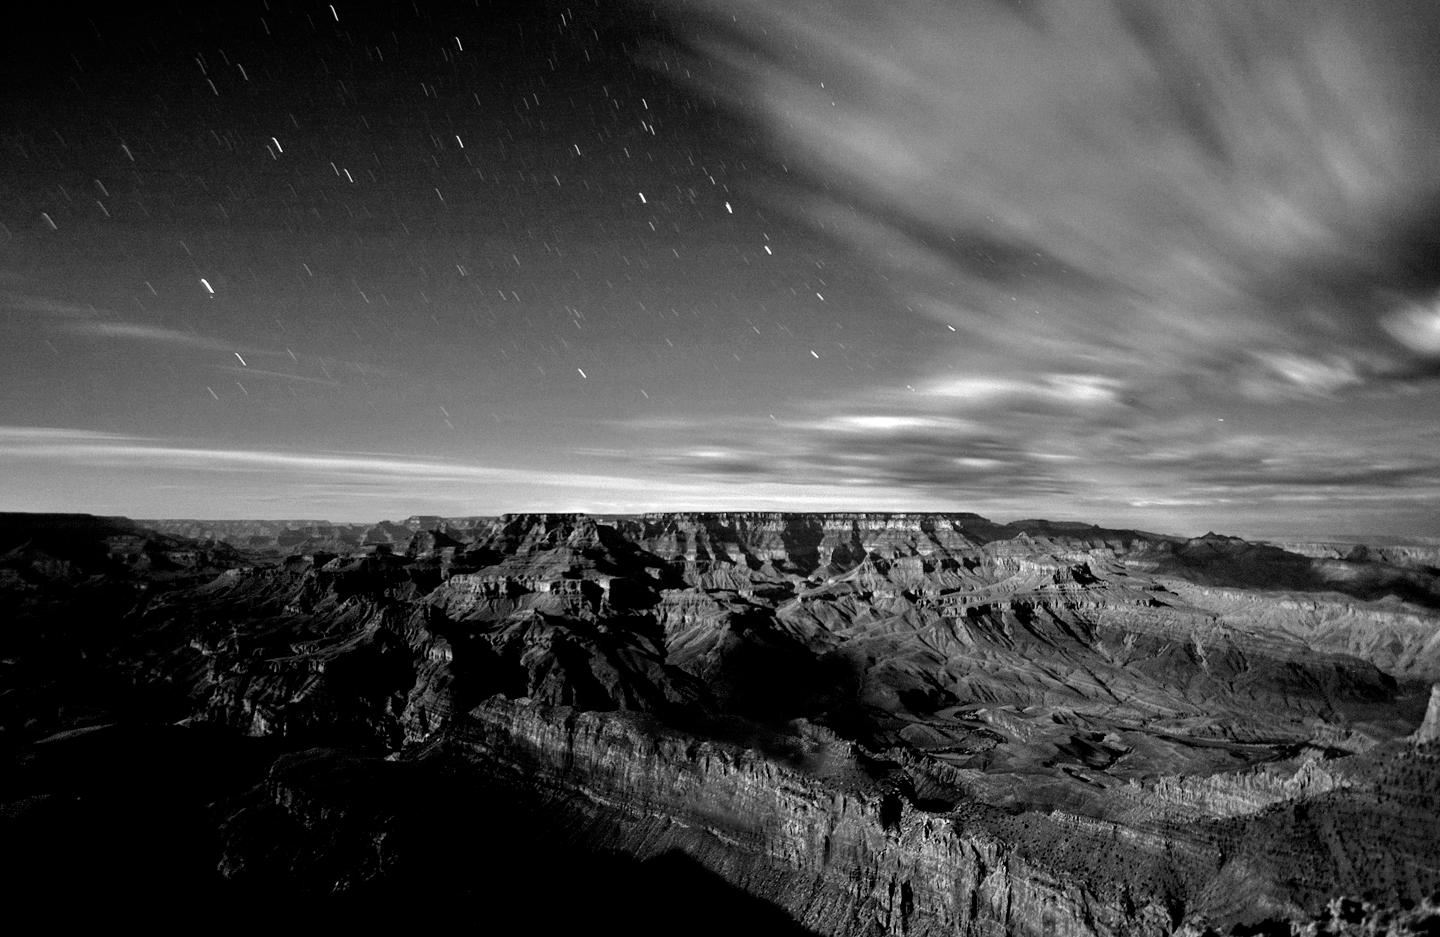 Grand Canyon at Night by gaghia on DeviantArt